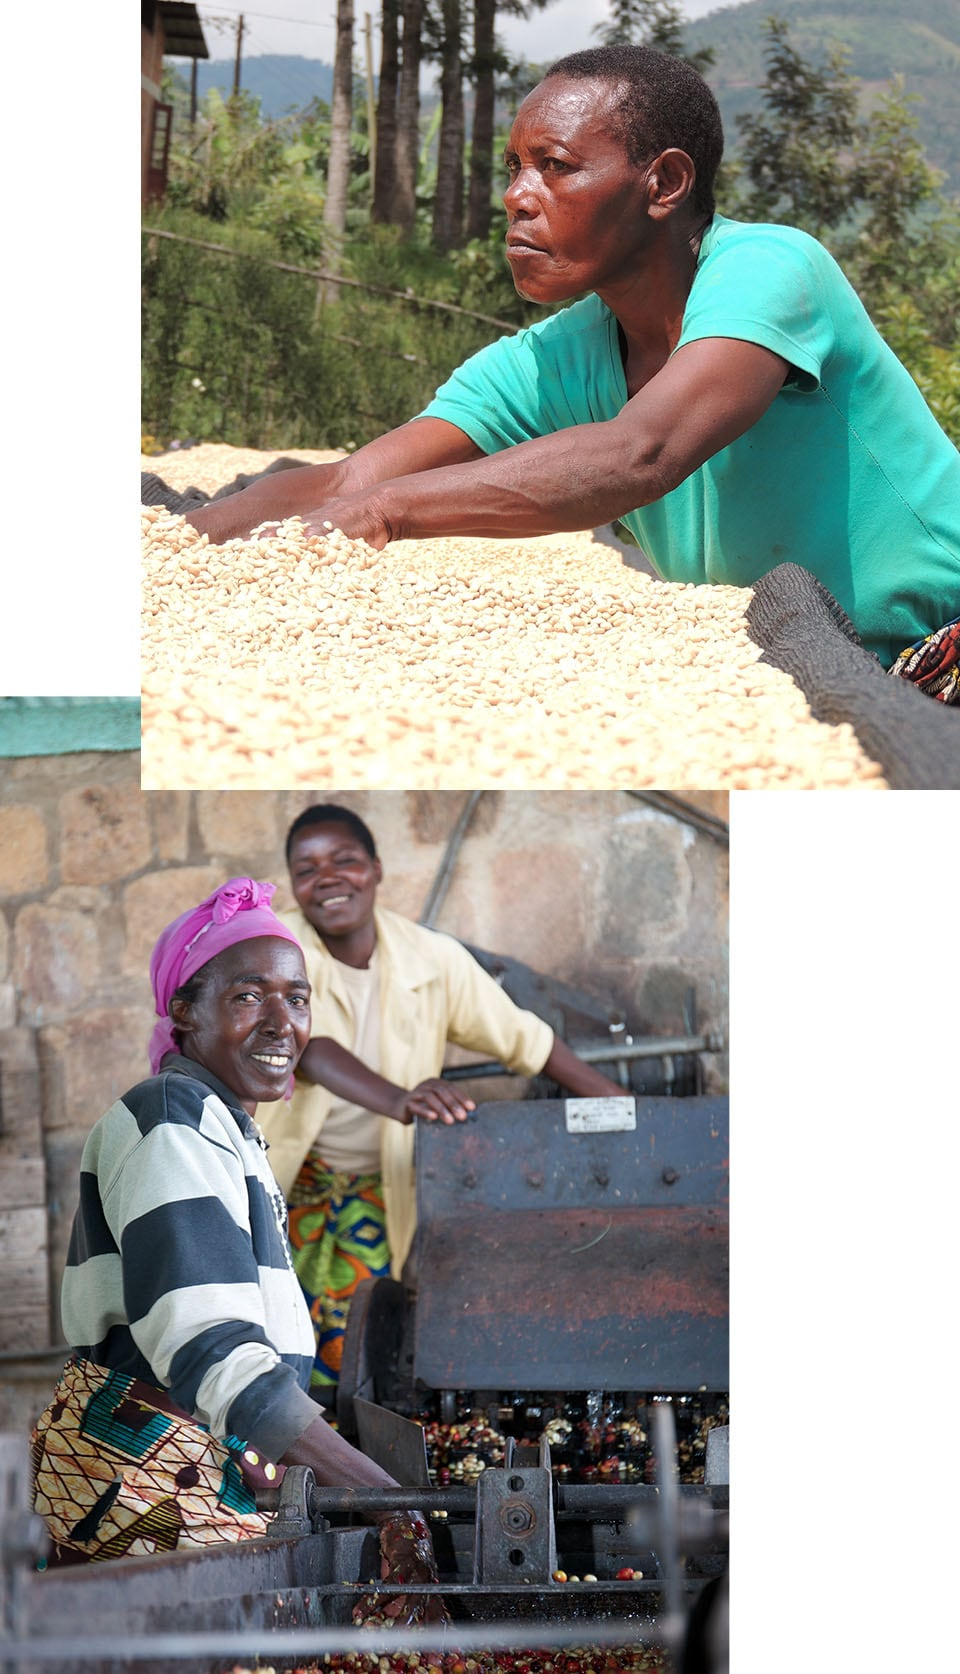 Collage of a woman sorting coffee beans and two women smiling at the camera while operating machinery